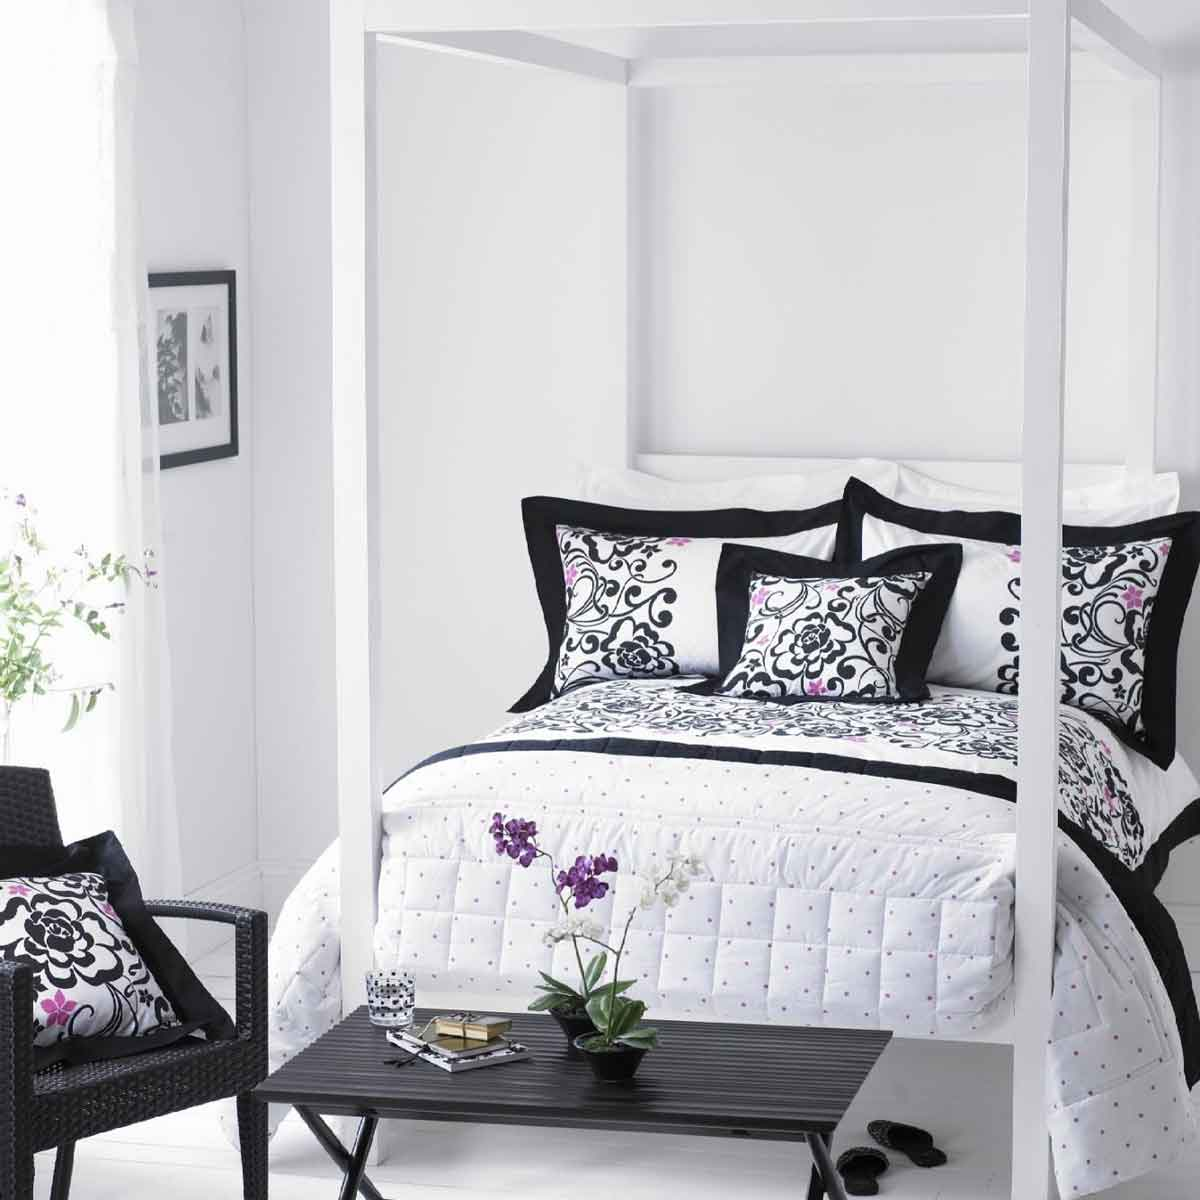 Modern black and white bedroom ideas for Bed room decoration ideas